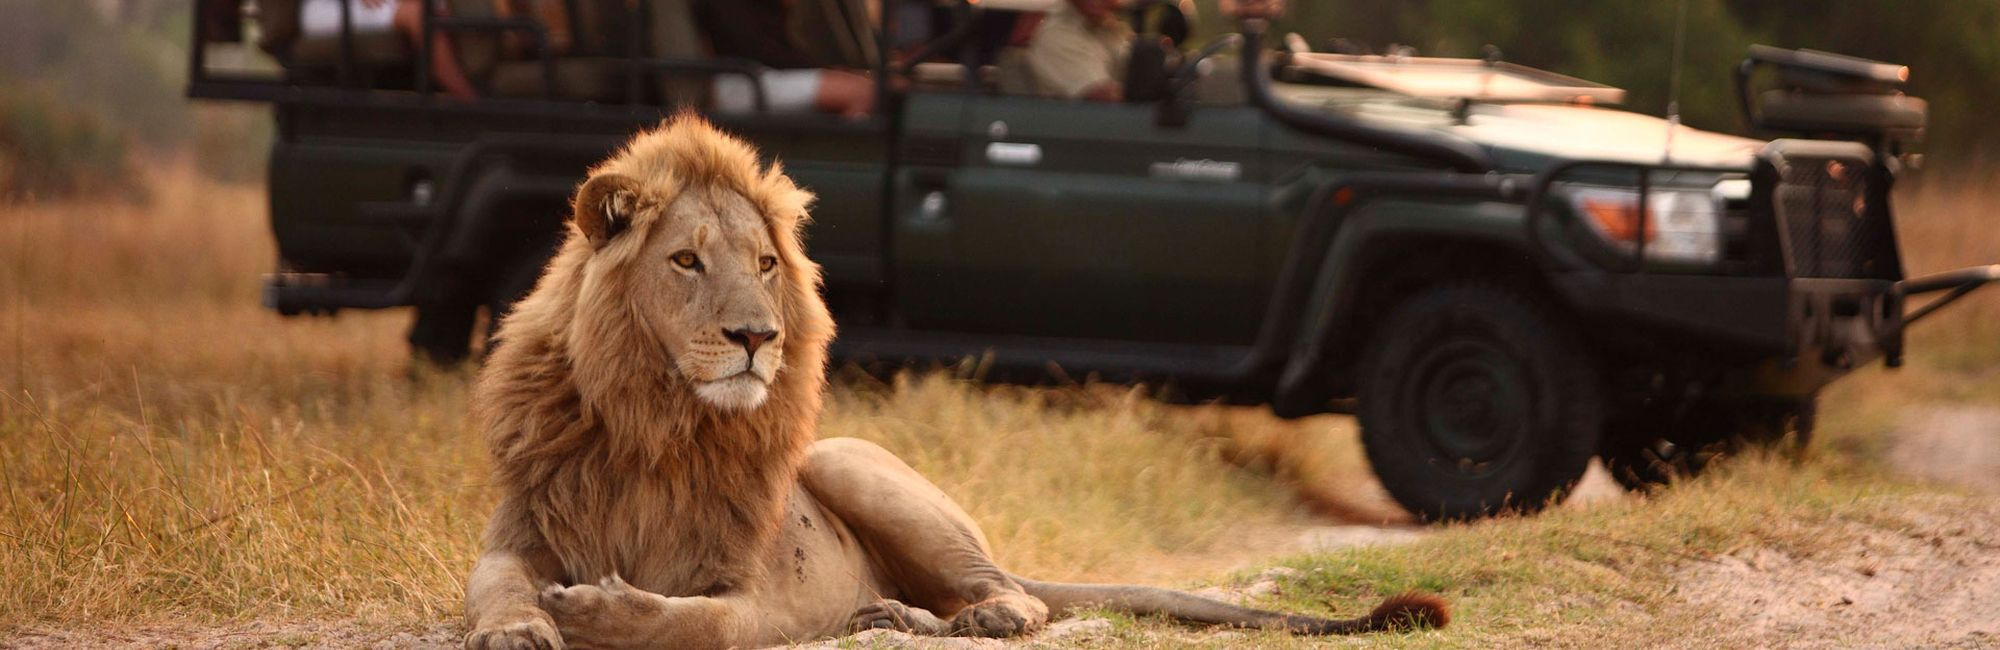 Home game drive lion